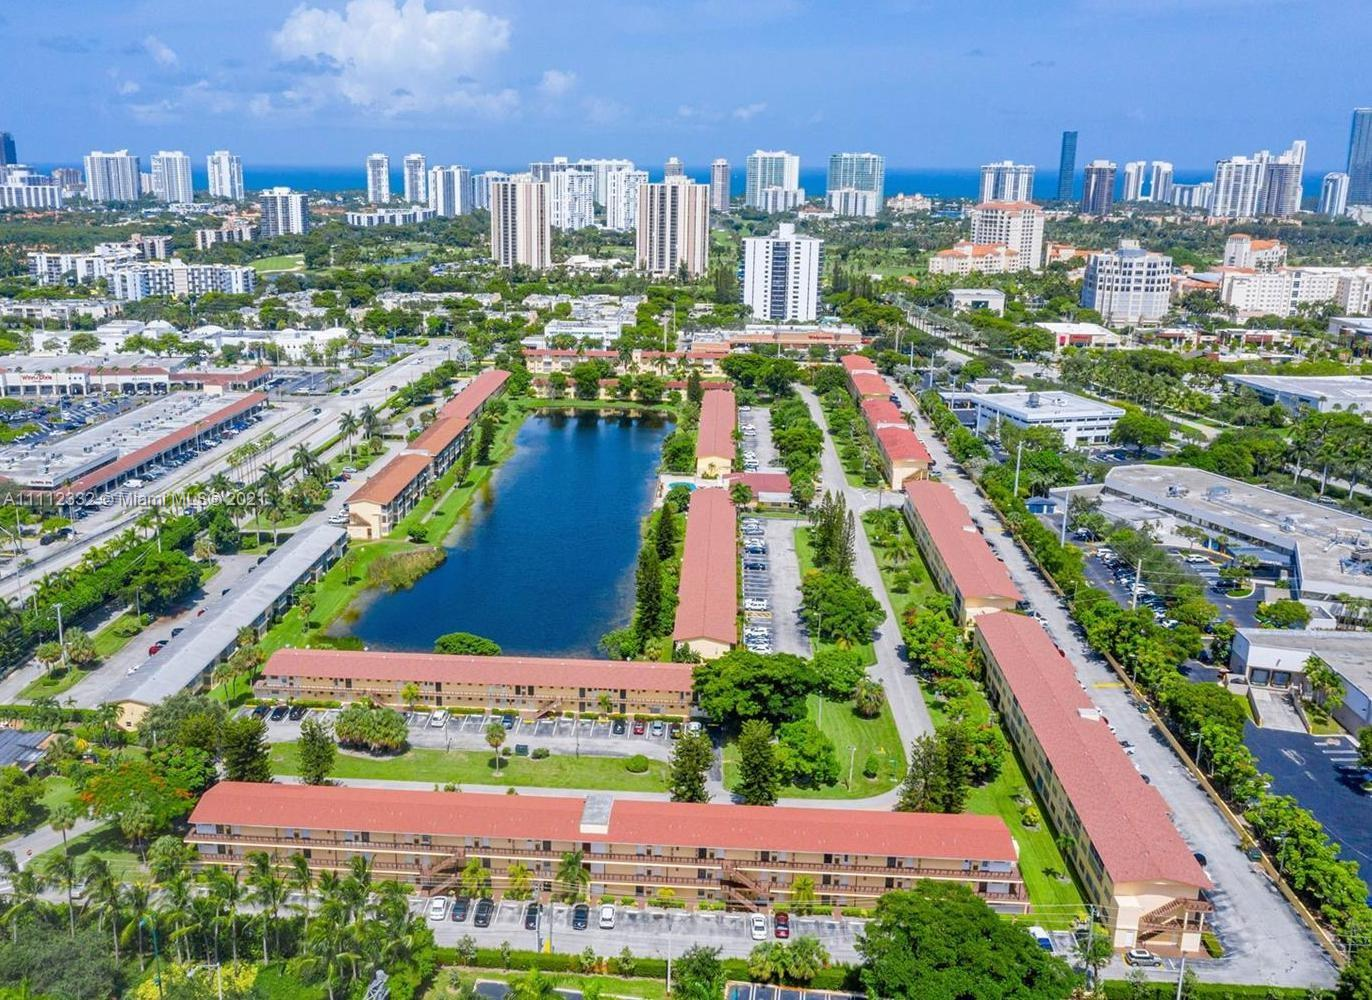 BISC LAKE GARDENS CONDO N Condo,For Sale,BISC LAKE GARDENS CONDO N Brickell,realty,broker,condos near me